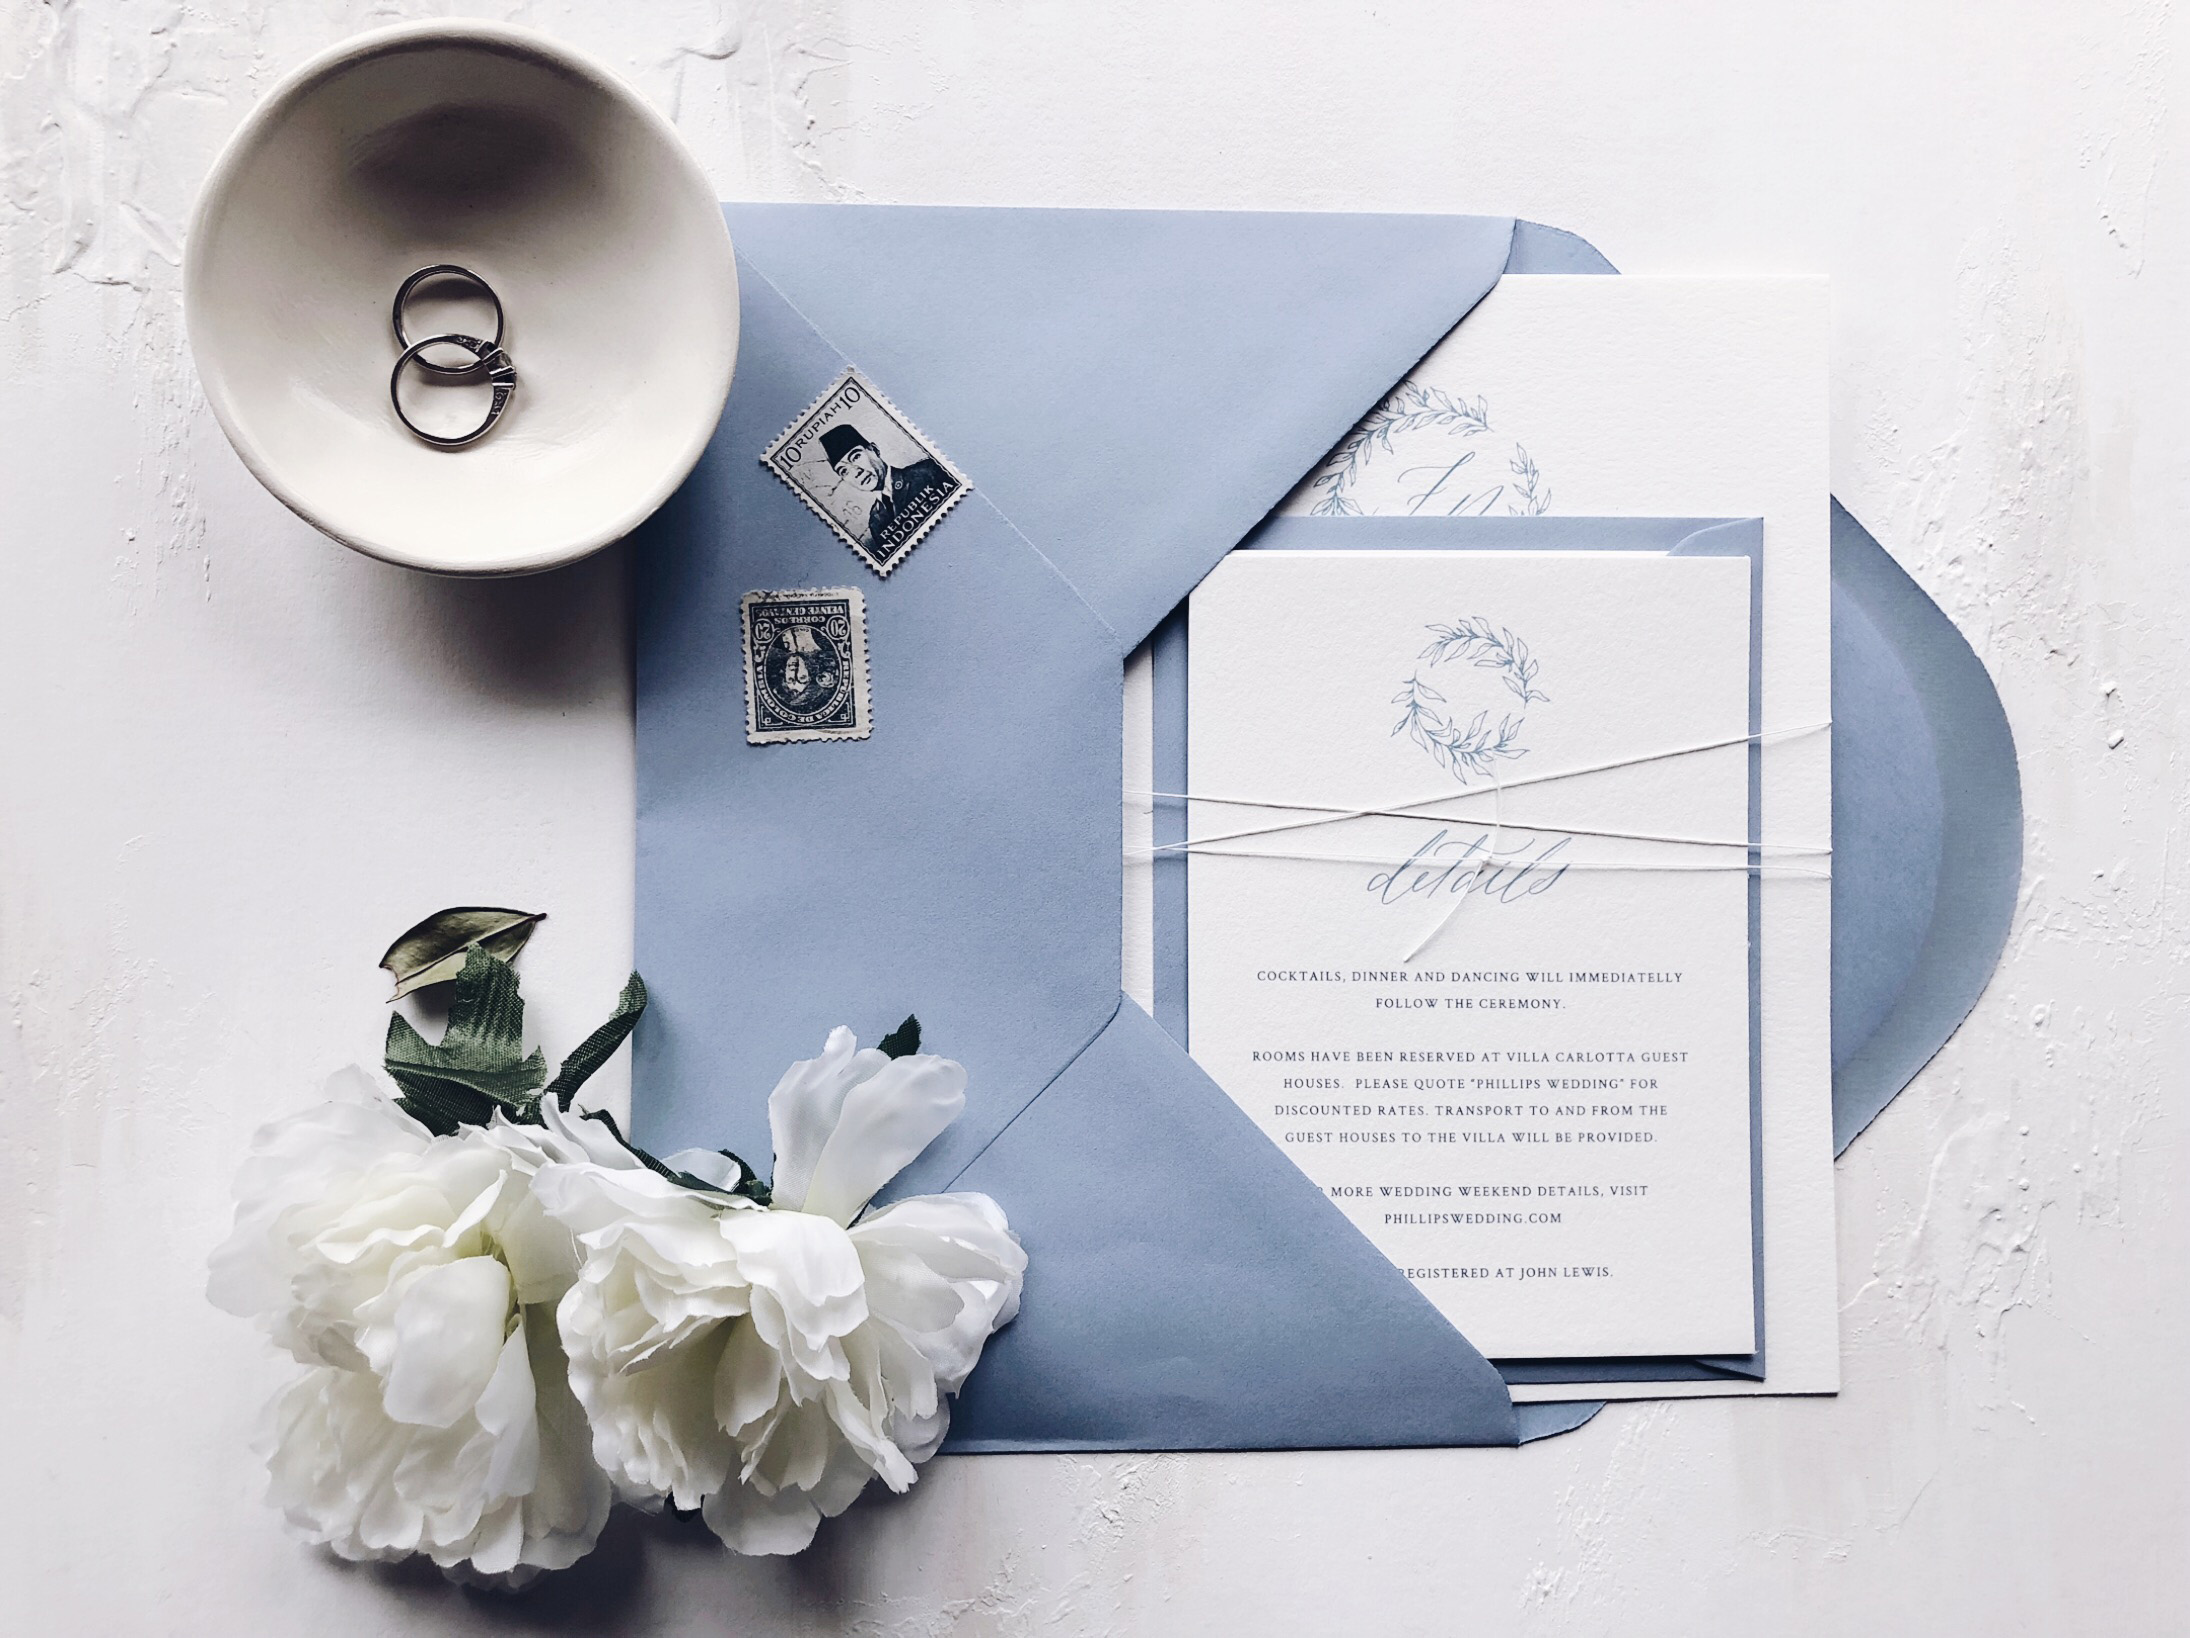 Foliage wedding invitations with calligraphy detail